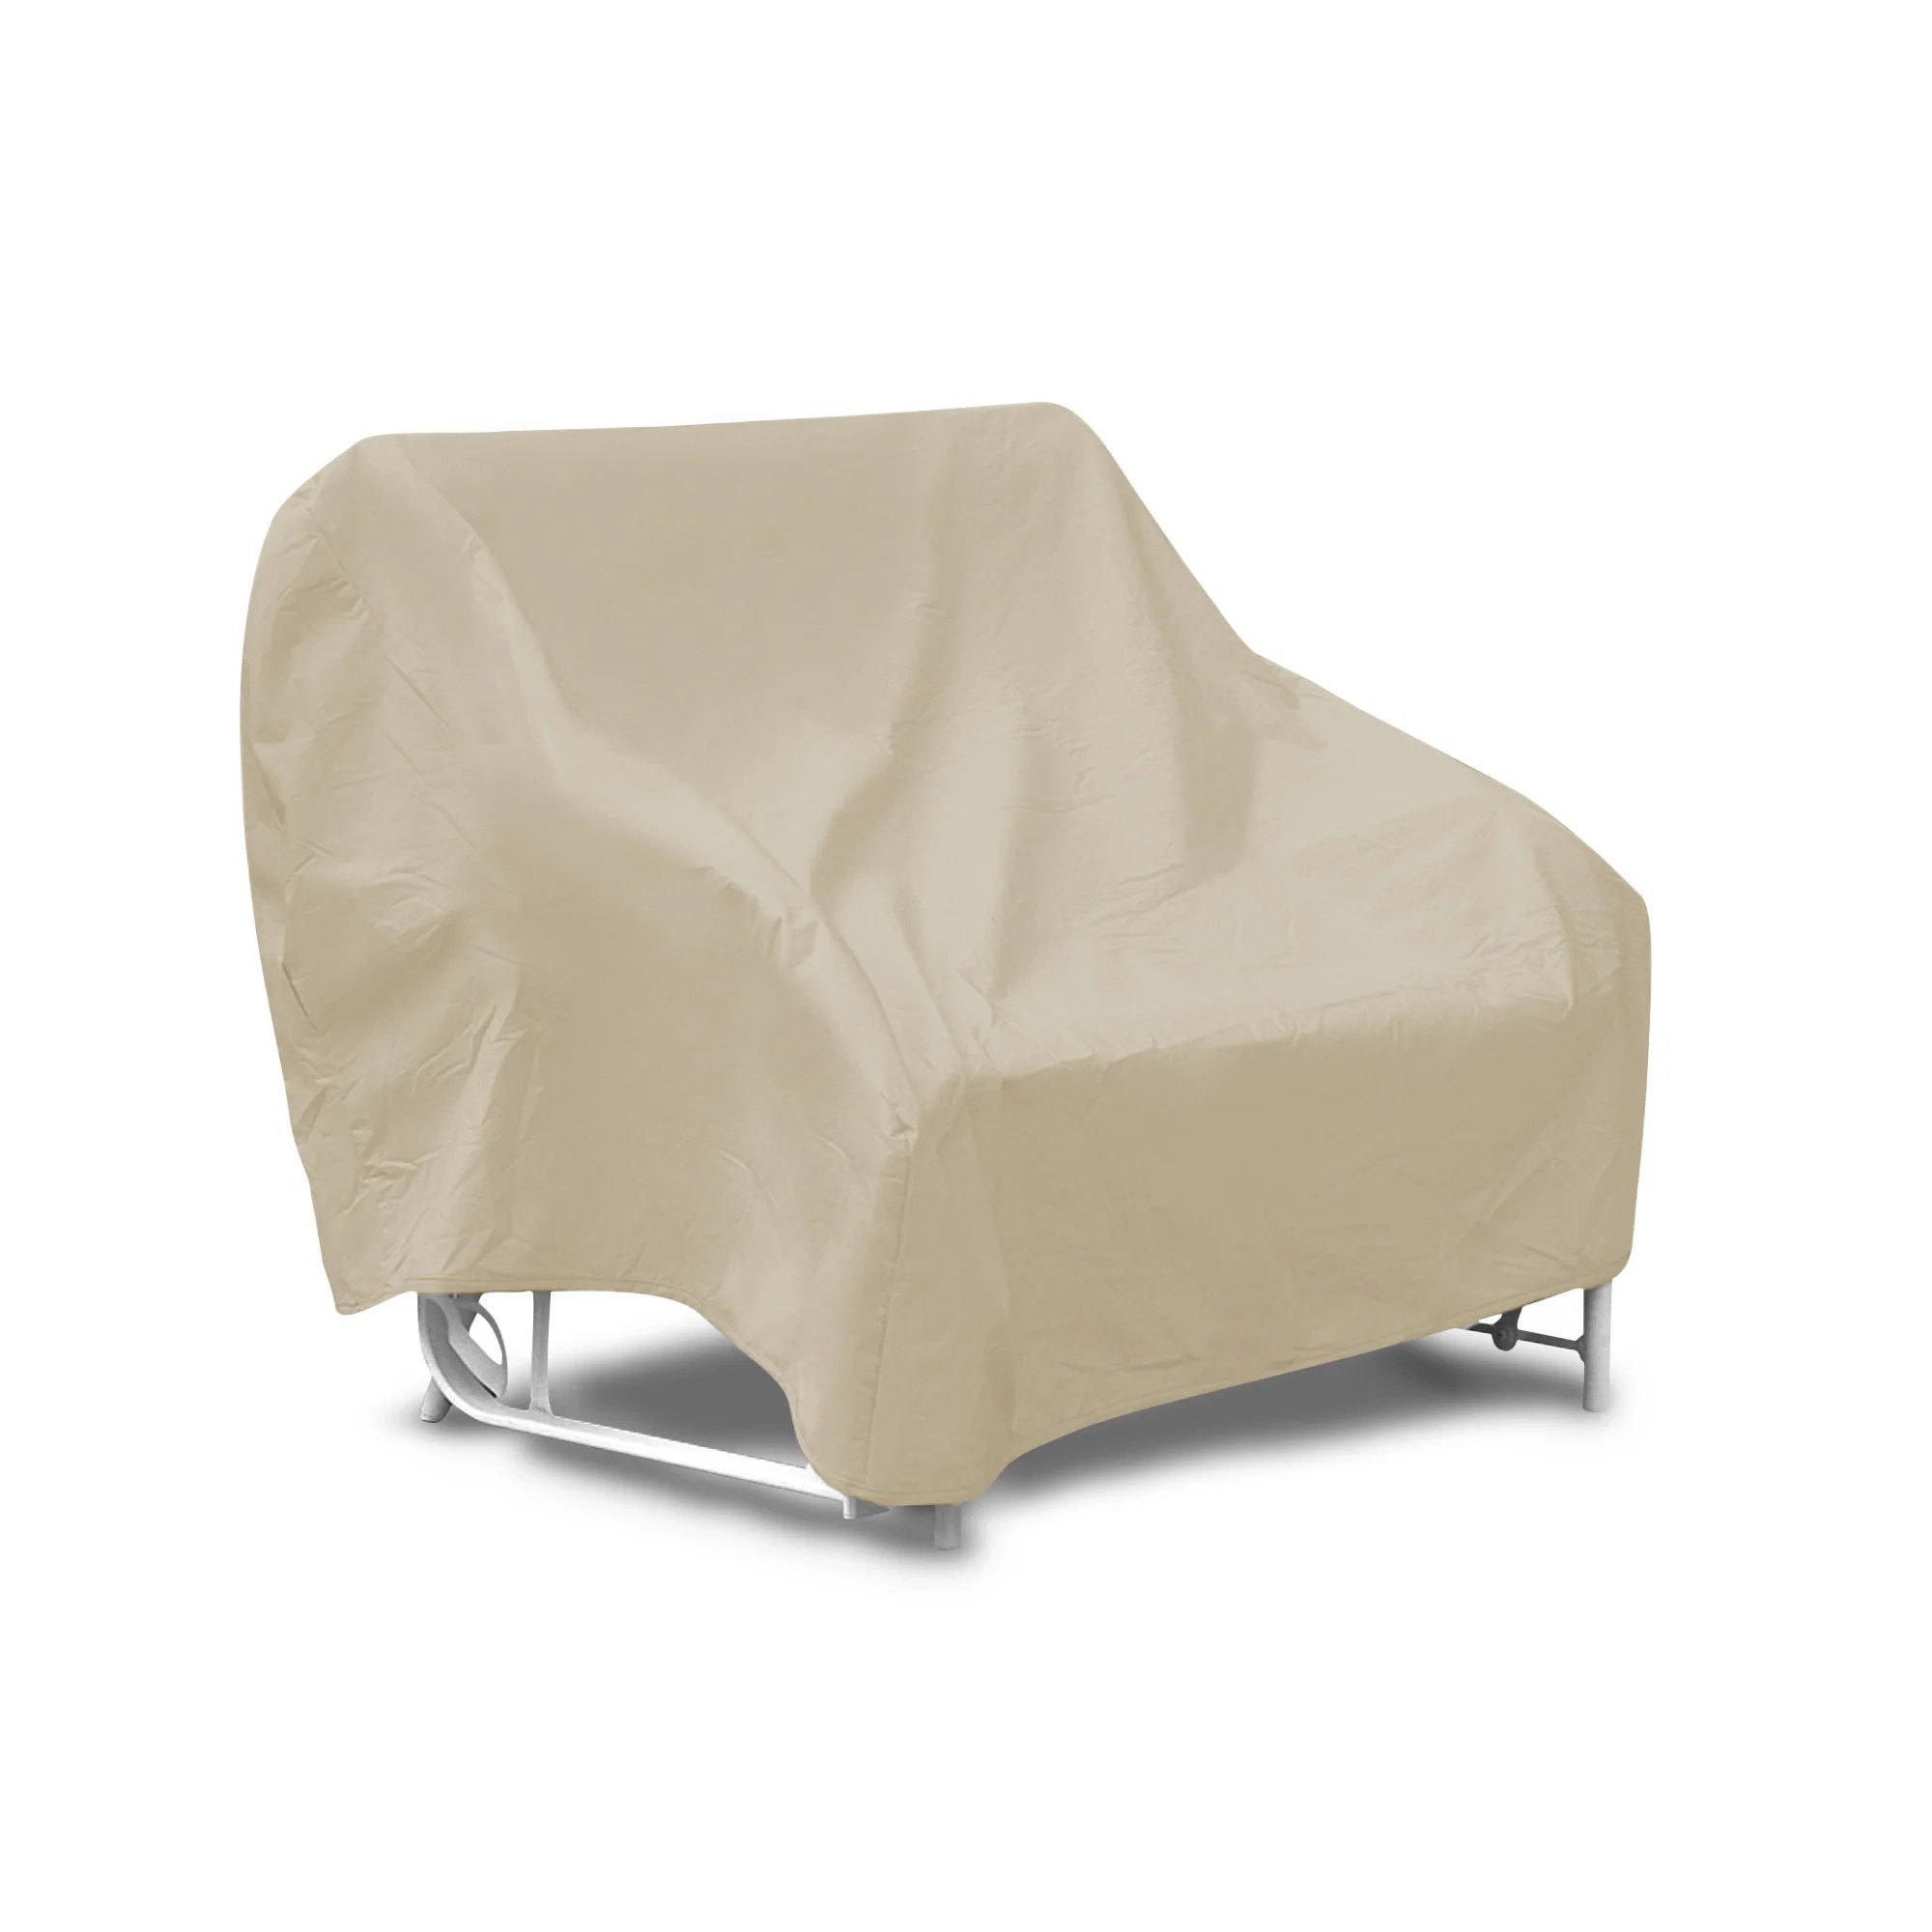 chair covers for garden furniture hanging price waterproof outdoor glider patio two seat cover